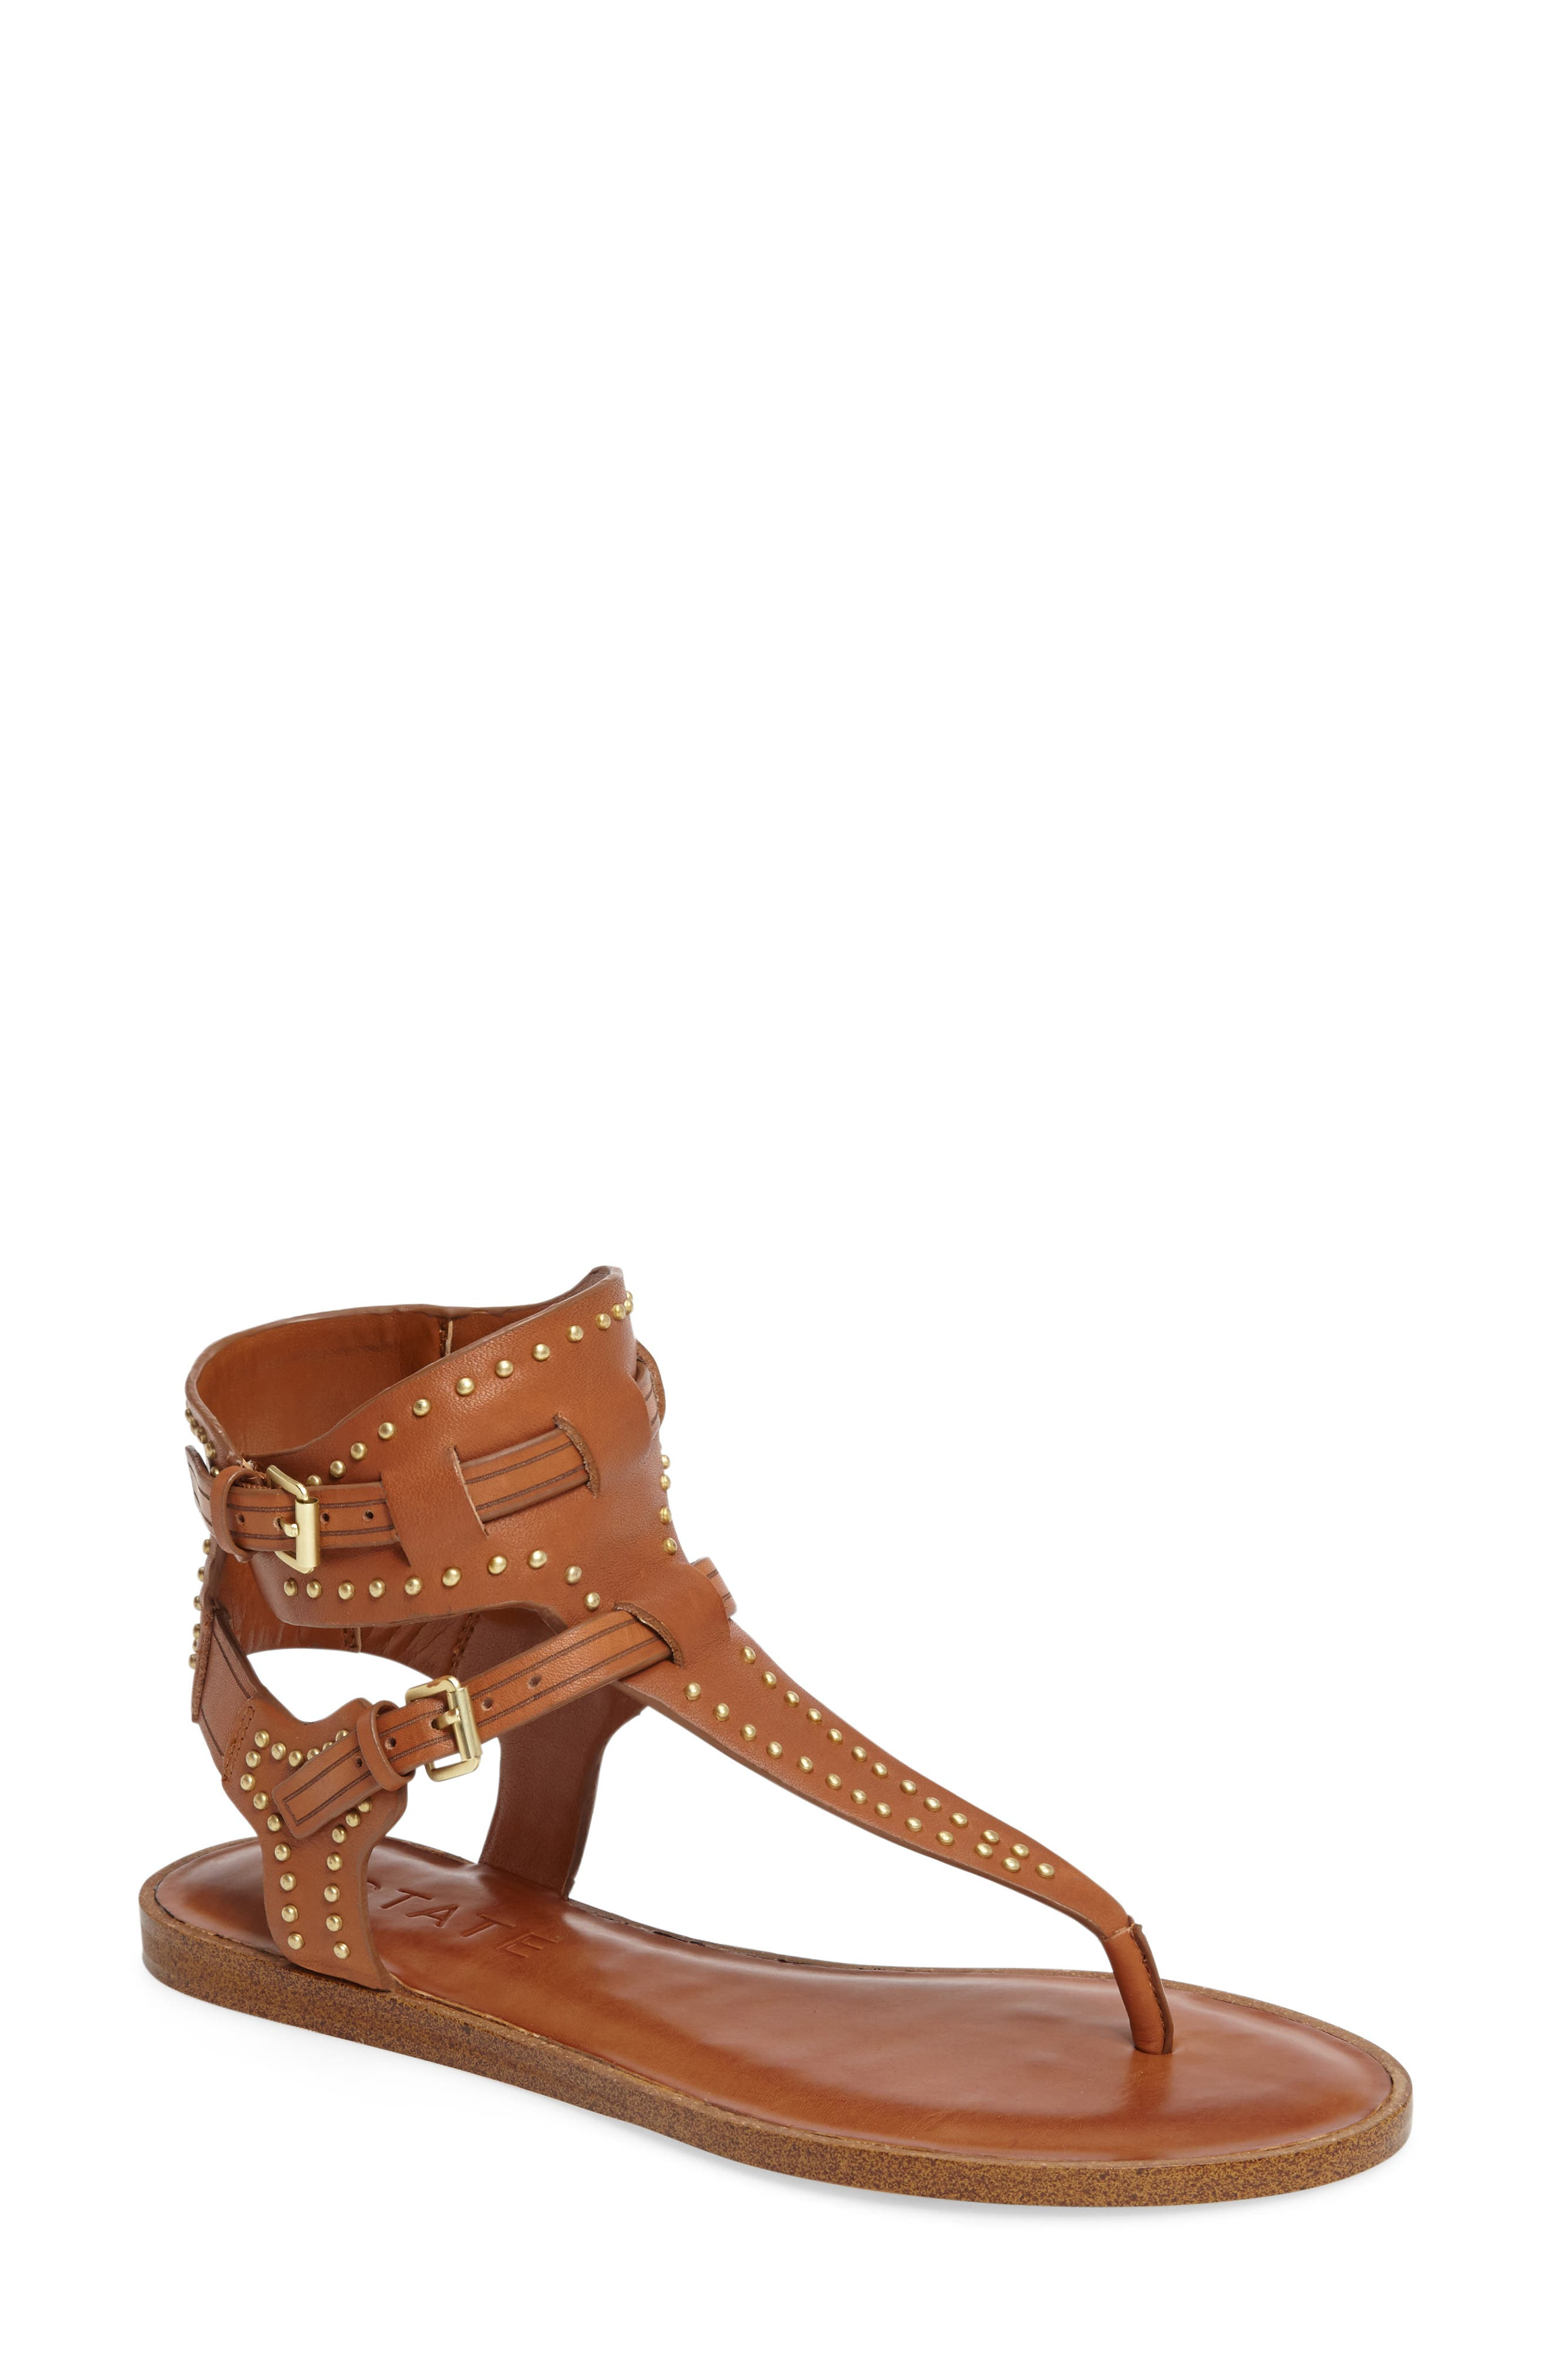 Alternate Image 1 Selected - 1.STATE Lamanna Ankle Strap Sandal (Women)